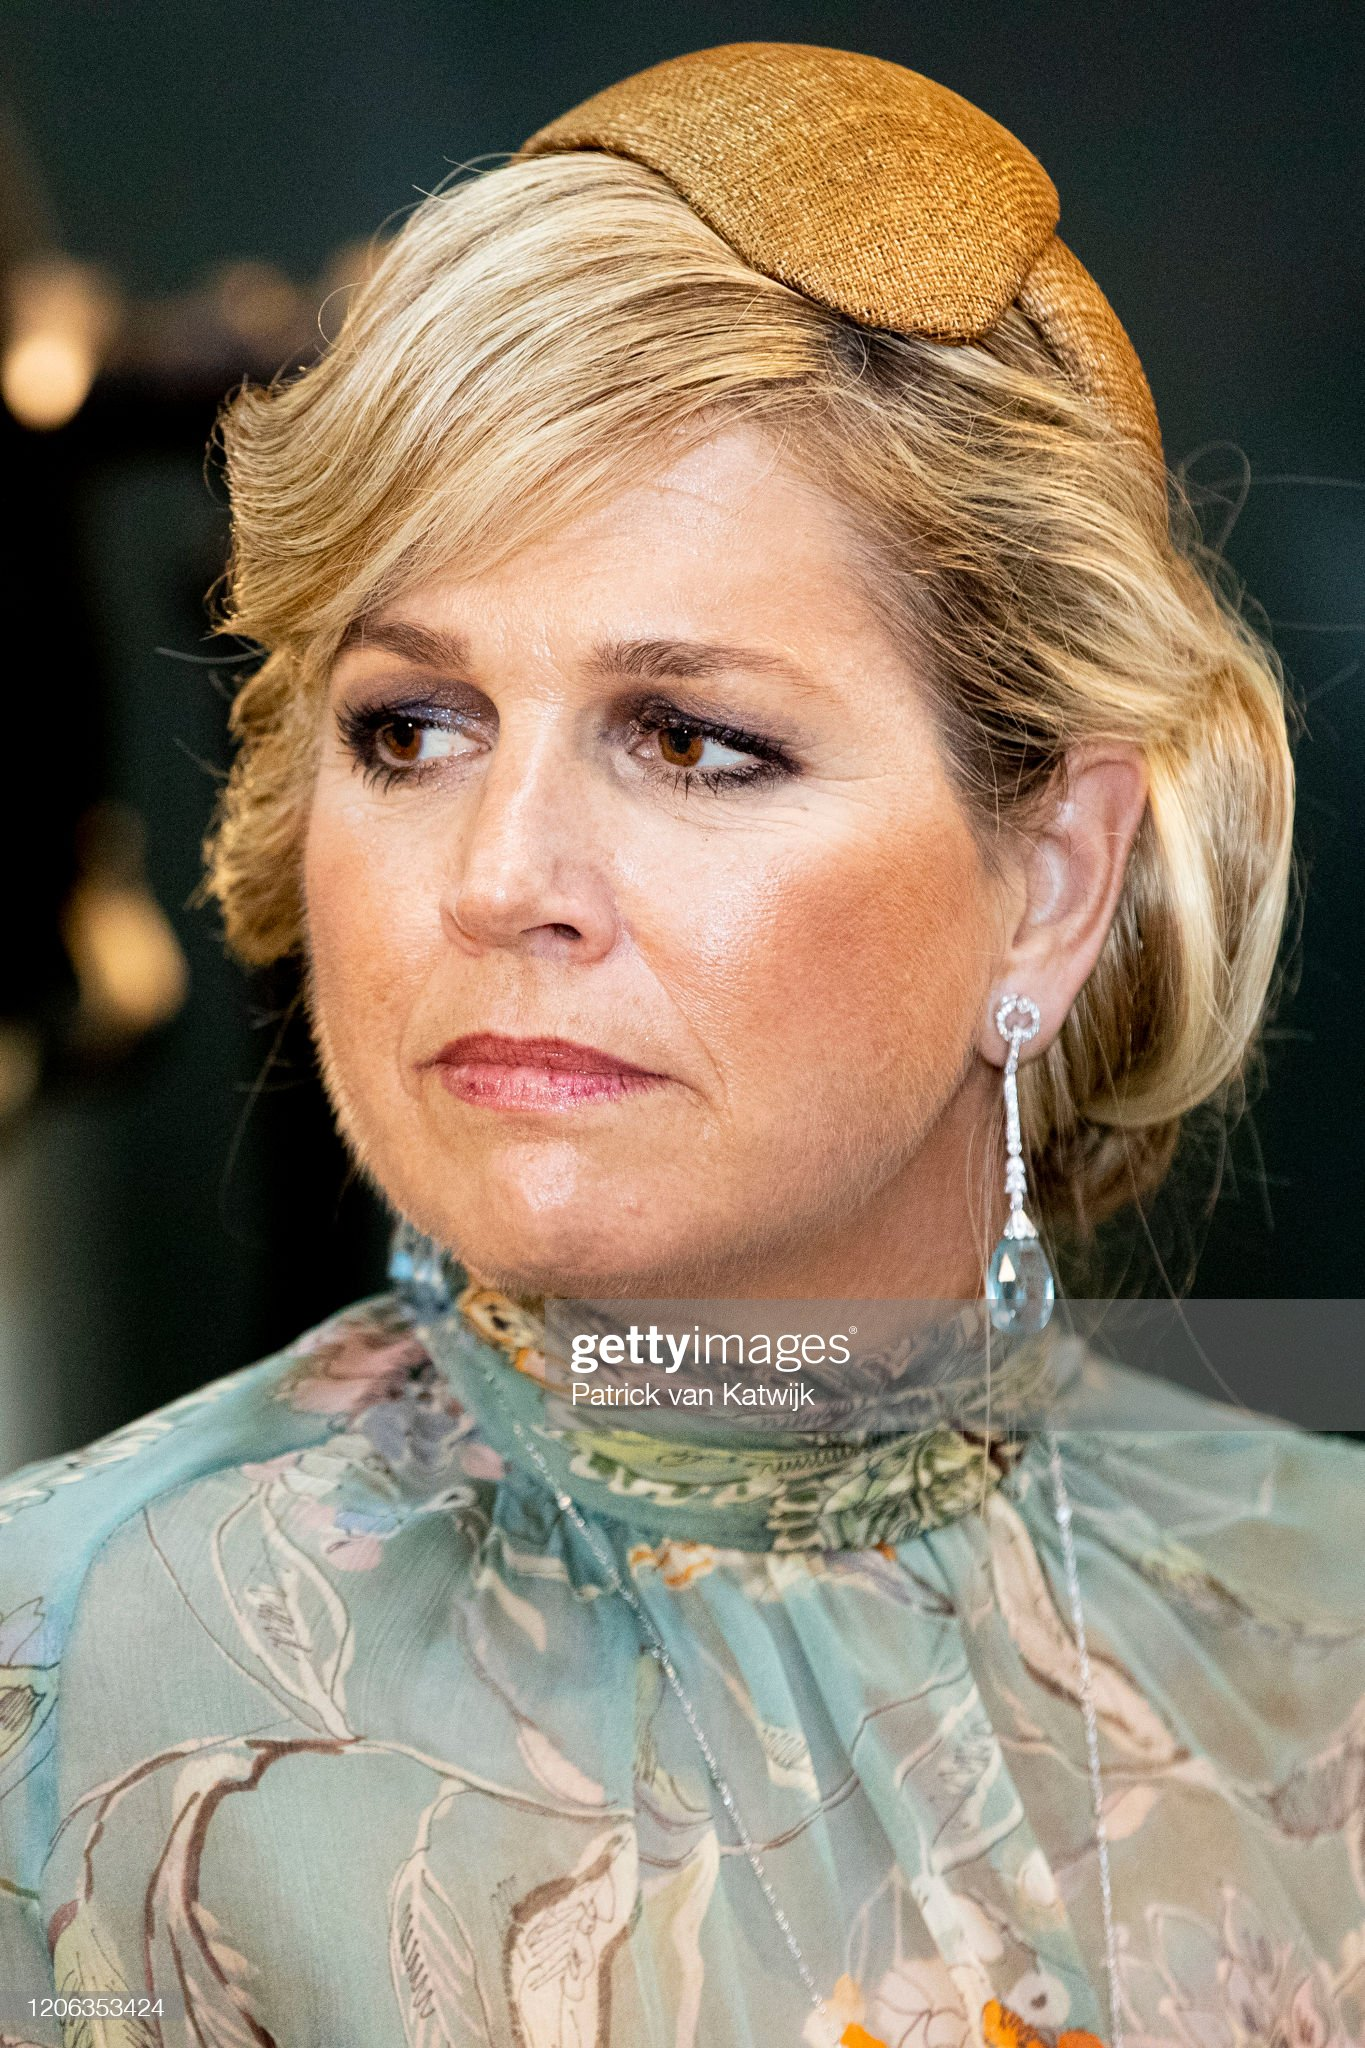 https://media.gettyimages.com/photos/queen-maxima-of-the-netherlands-visit-pipiltin-chocolate-factory-on-picture-id1206353424?s=2048x2048